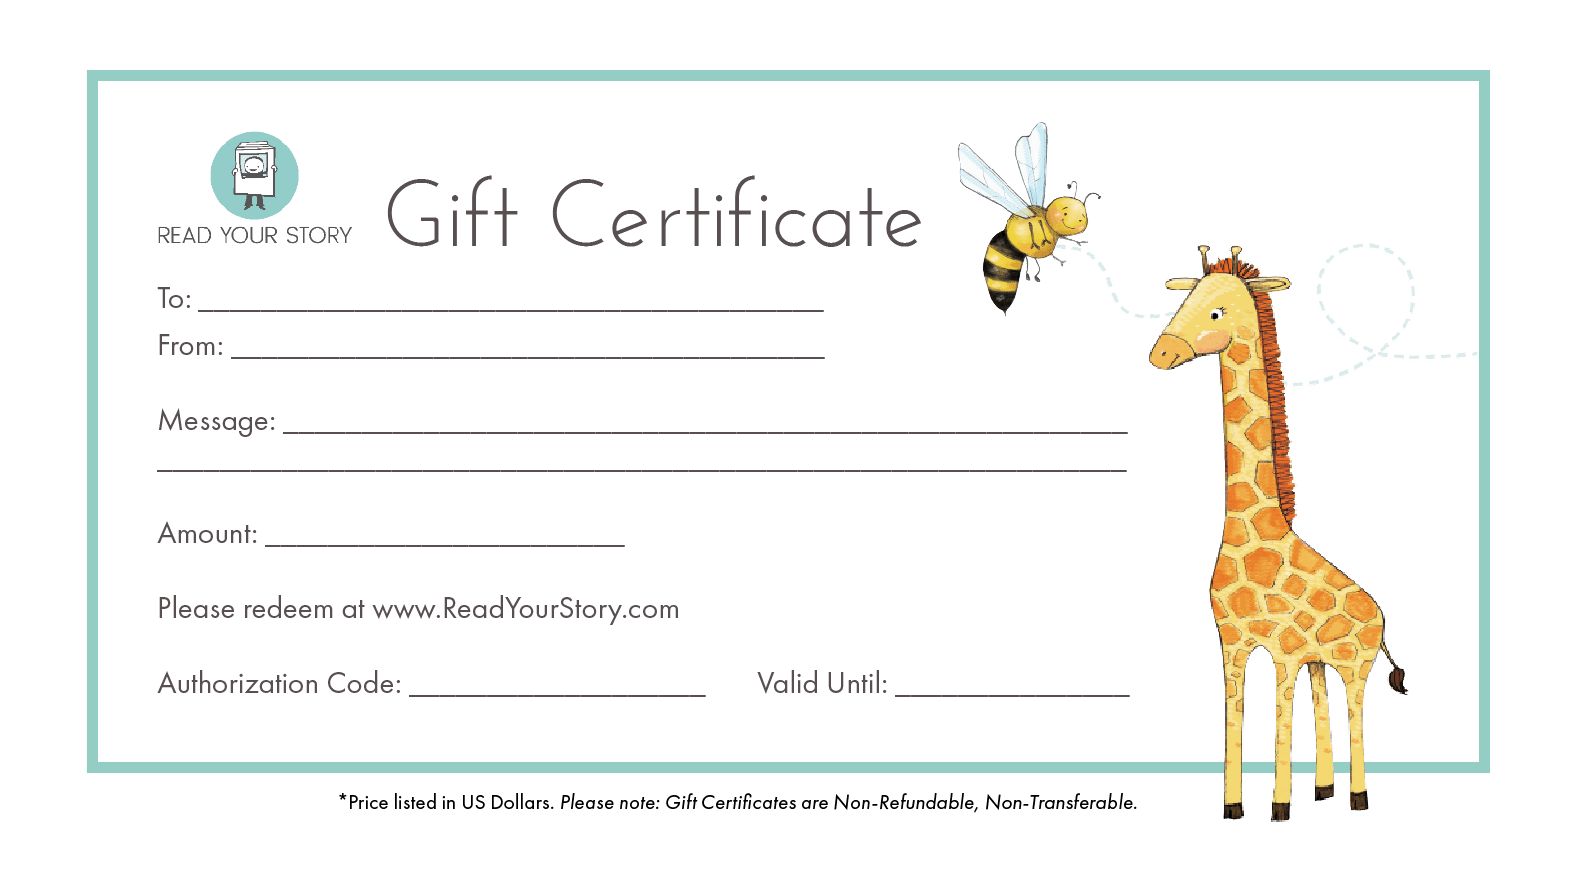 An example of a gift certificate with blank to, from and personalized message fields.  Gift certificate is adorned with color illustrations of a bee and a giraffe, with the Read Your Story logo in the top left corner